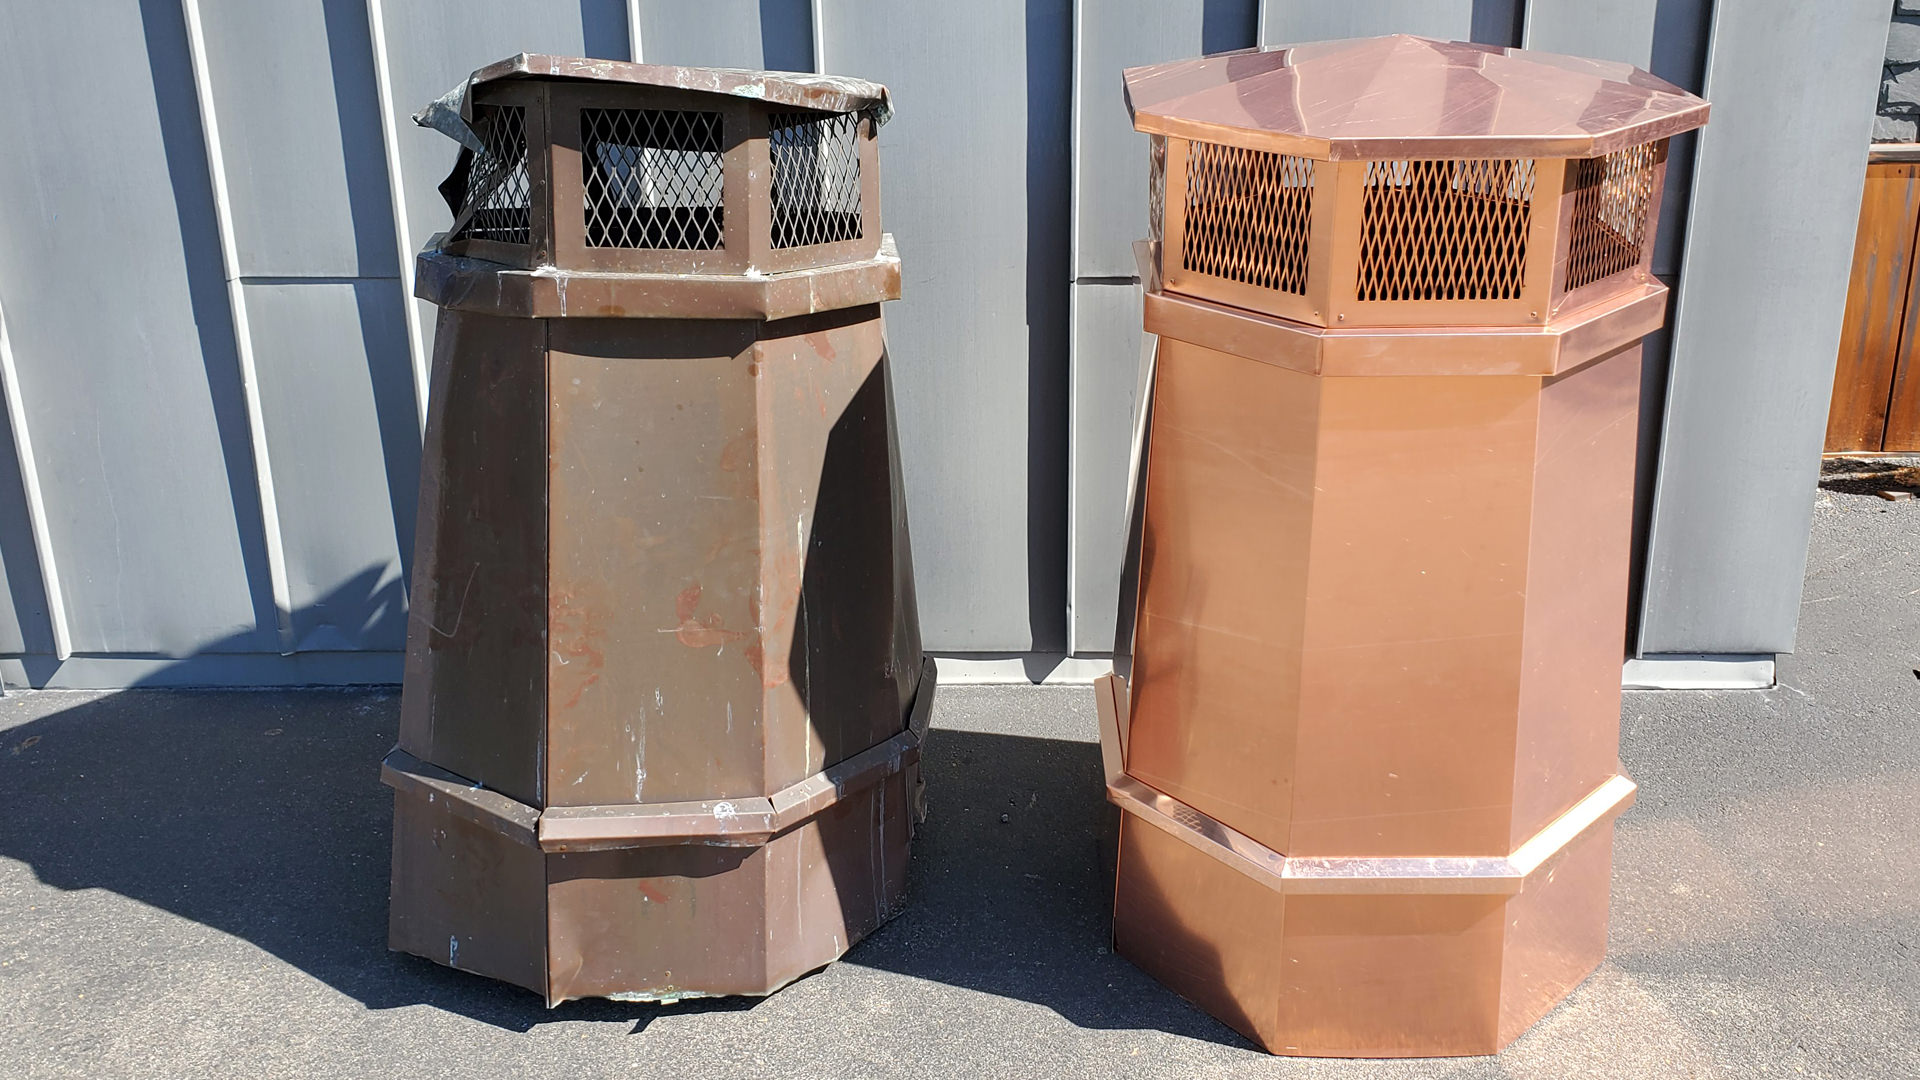 CC302 - Octagonal copper chimney pot remade project